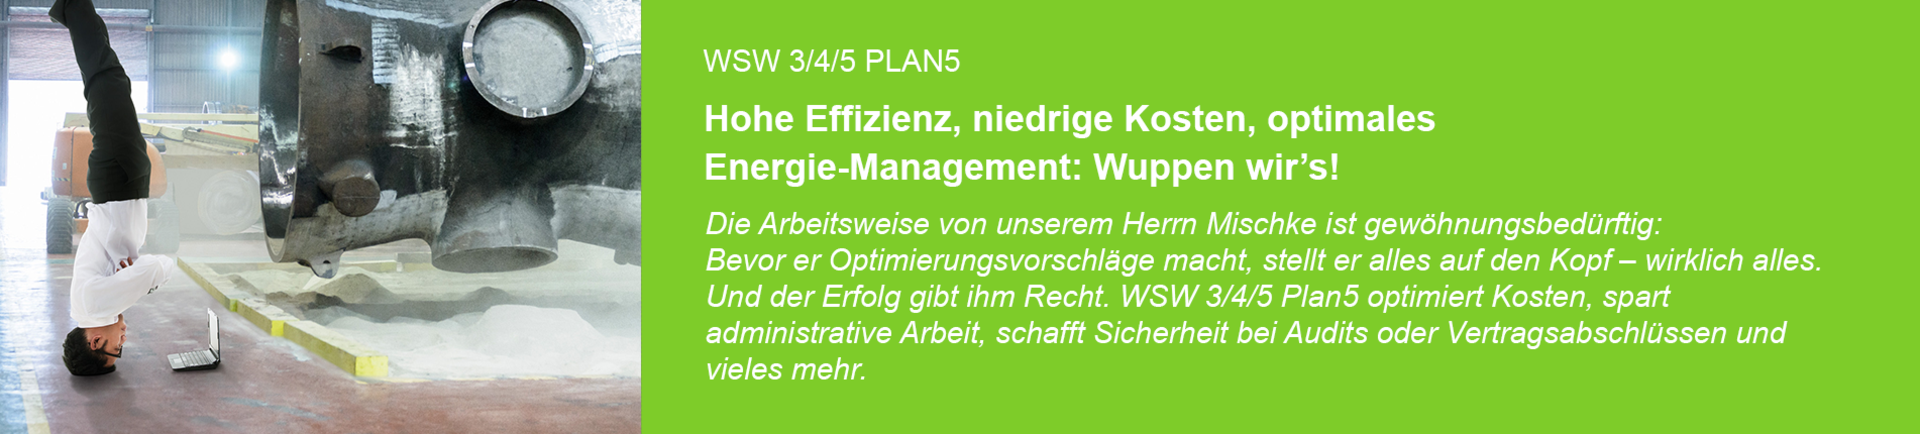 WSW 3/4/5 PLAN5 - Wuppen wir's!